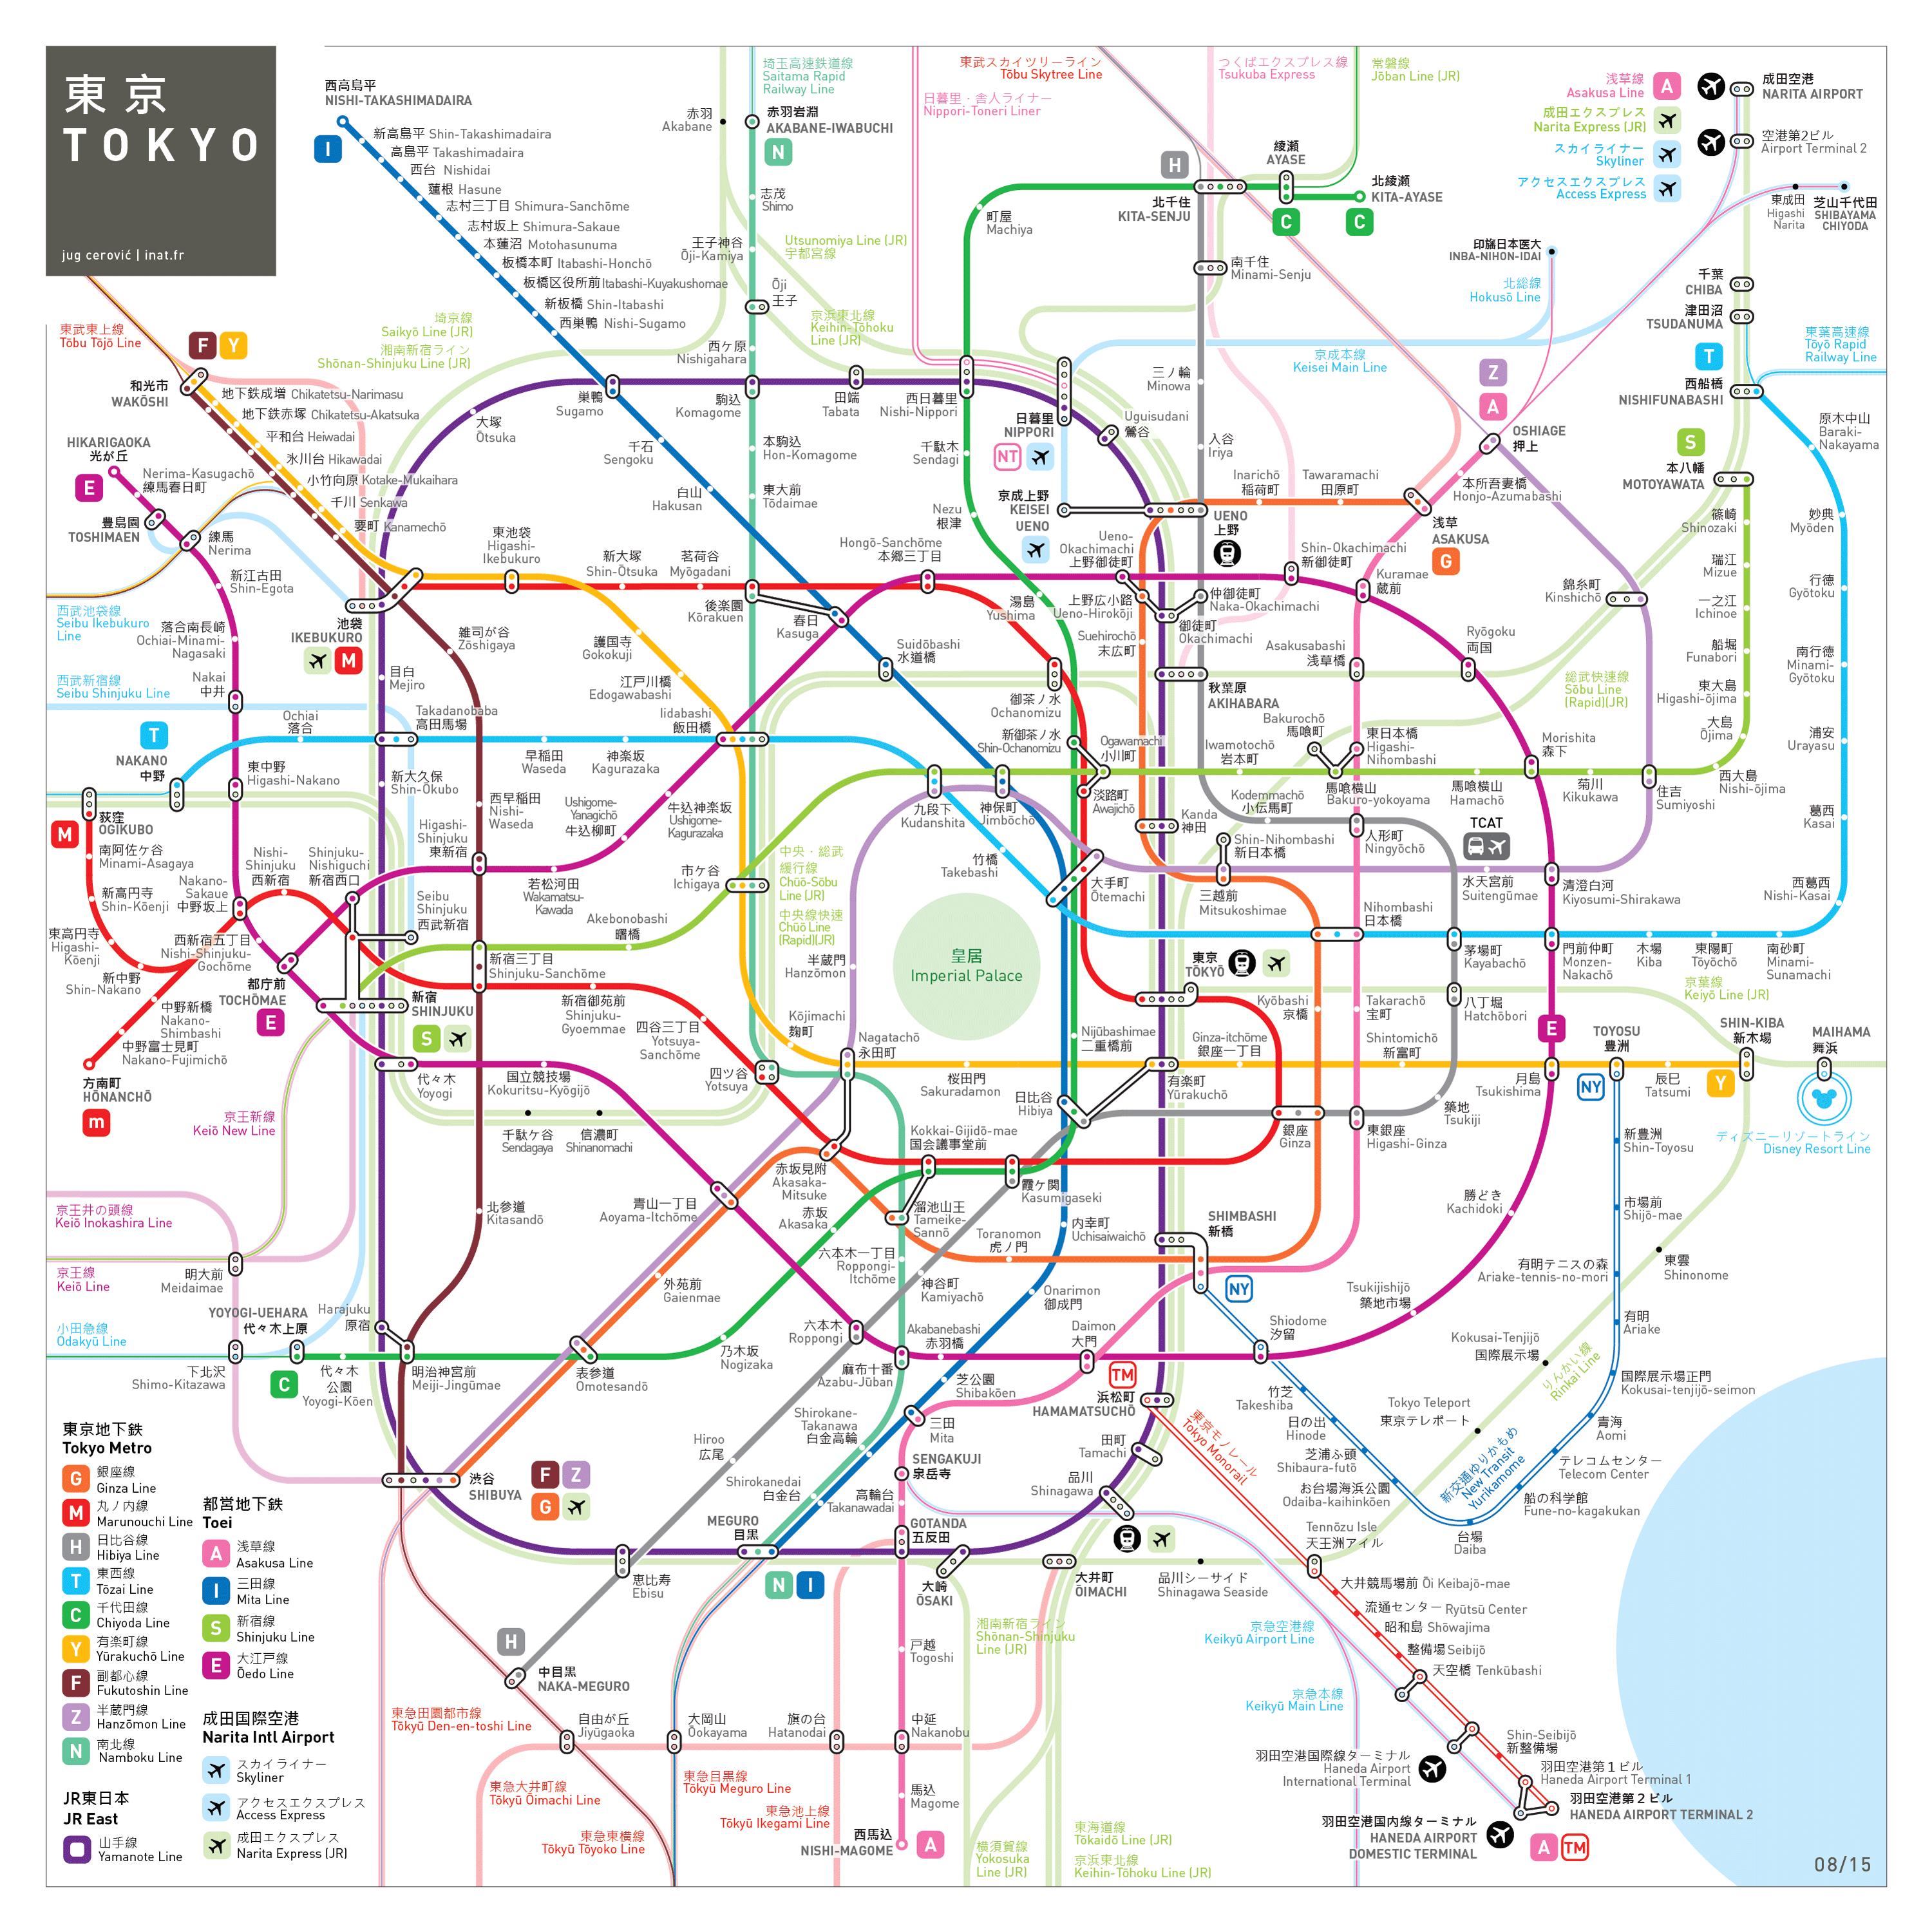 Legal Crossing In Boston Subway Map.Tokyo Metro Map Travel Japan In 2019 Subway Map Tokyo Map